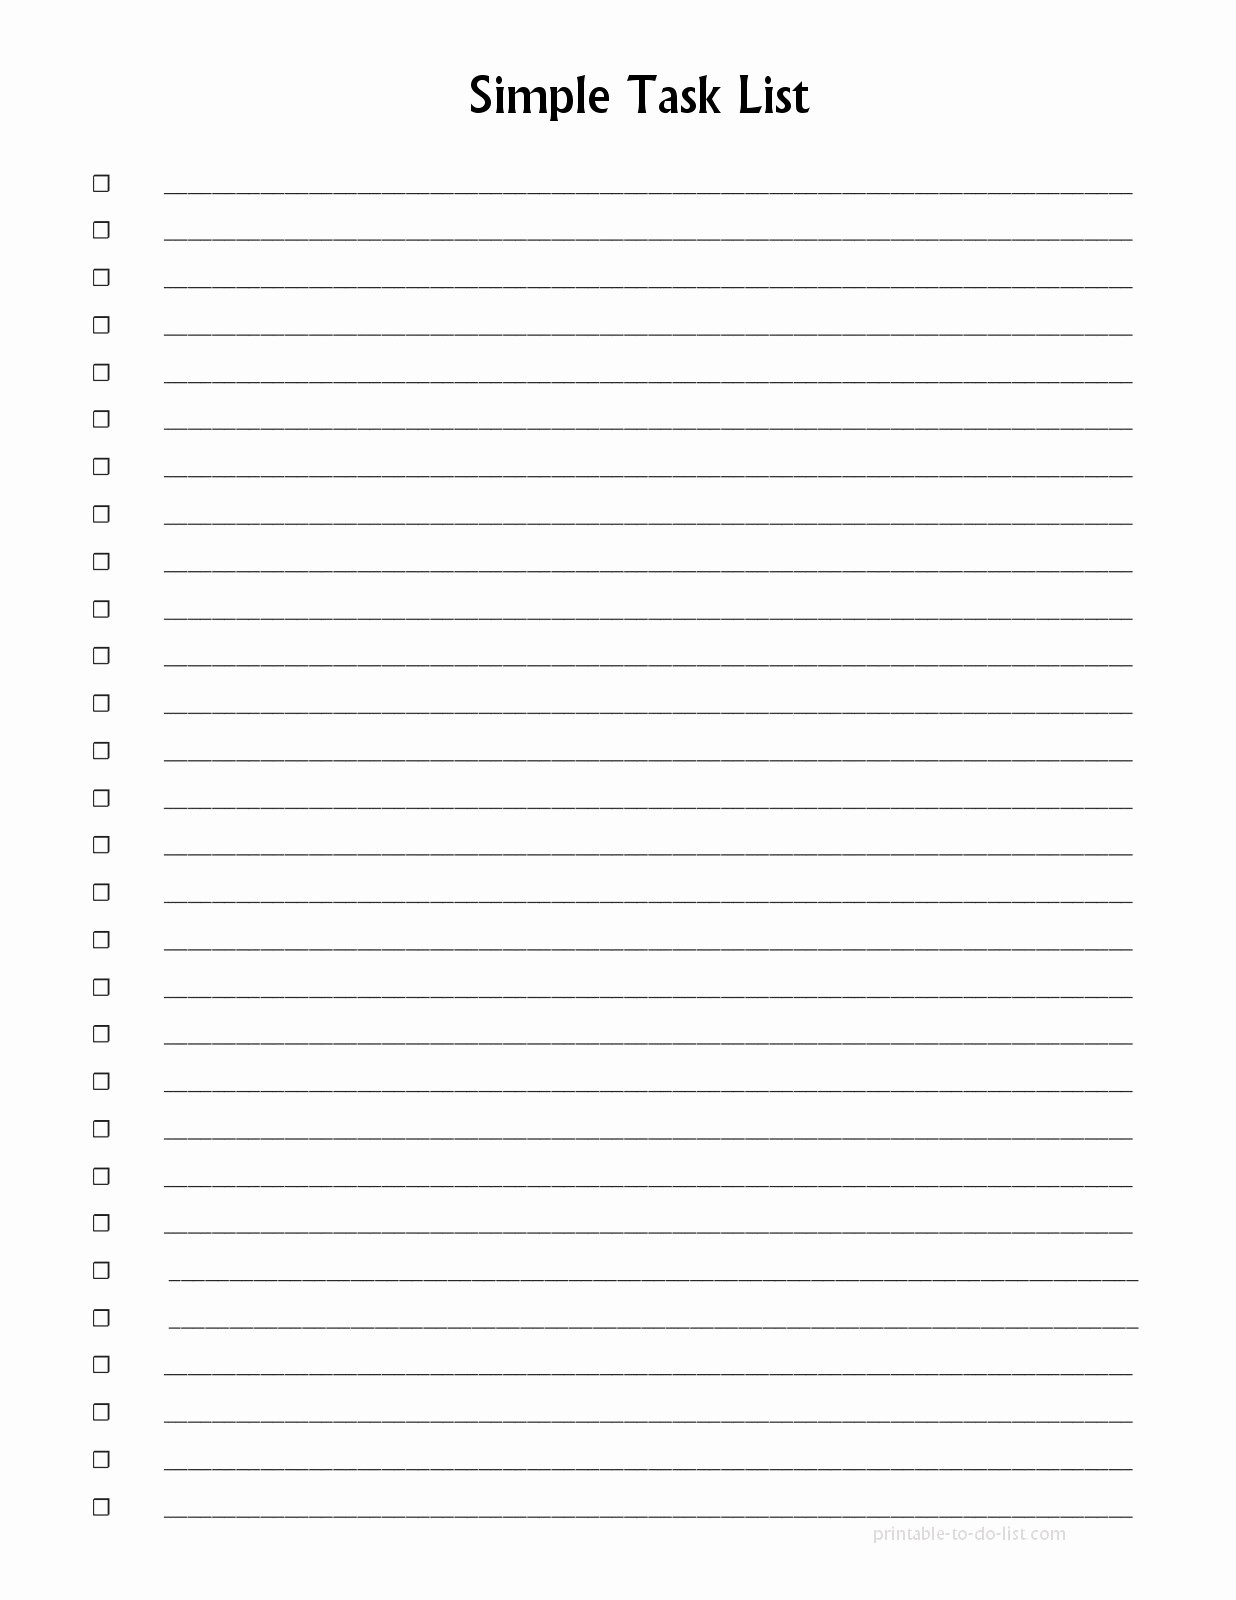 Things to Do Checklist Template Awesome Template List Things to Do Template